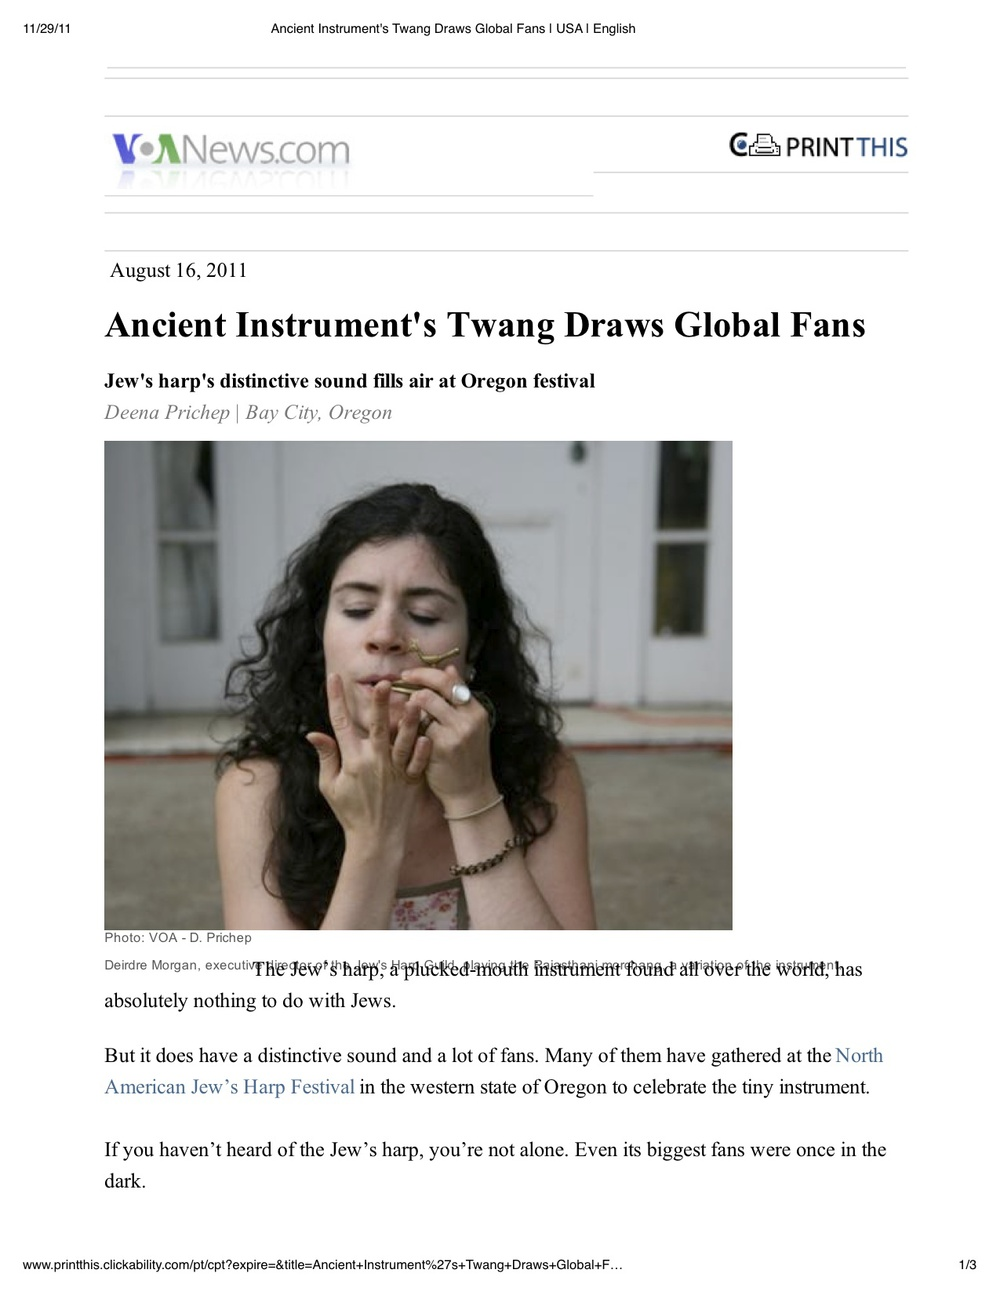 Ancient Instrument's Twang Draws Global Fans _ USA _ English.jpg